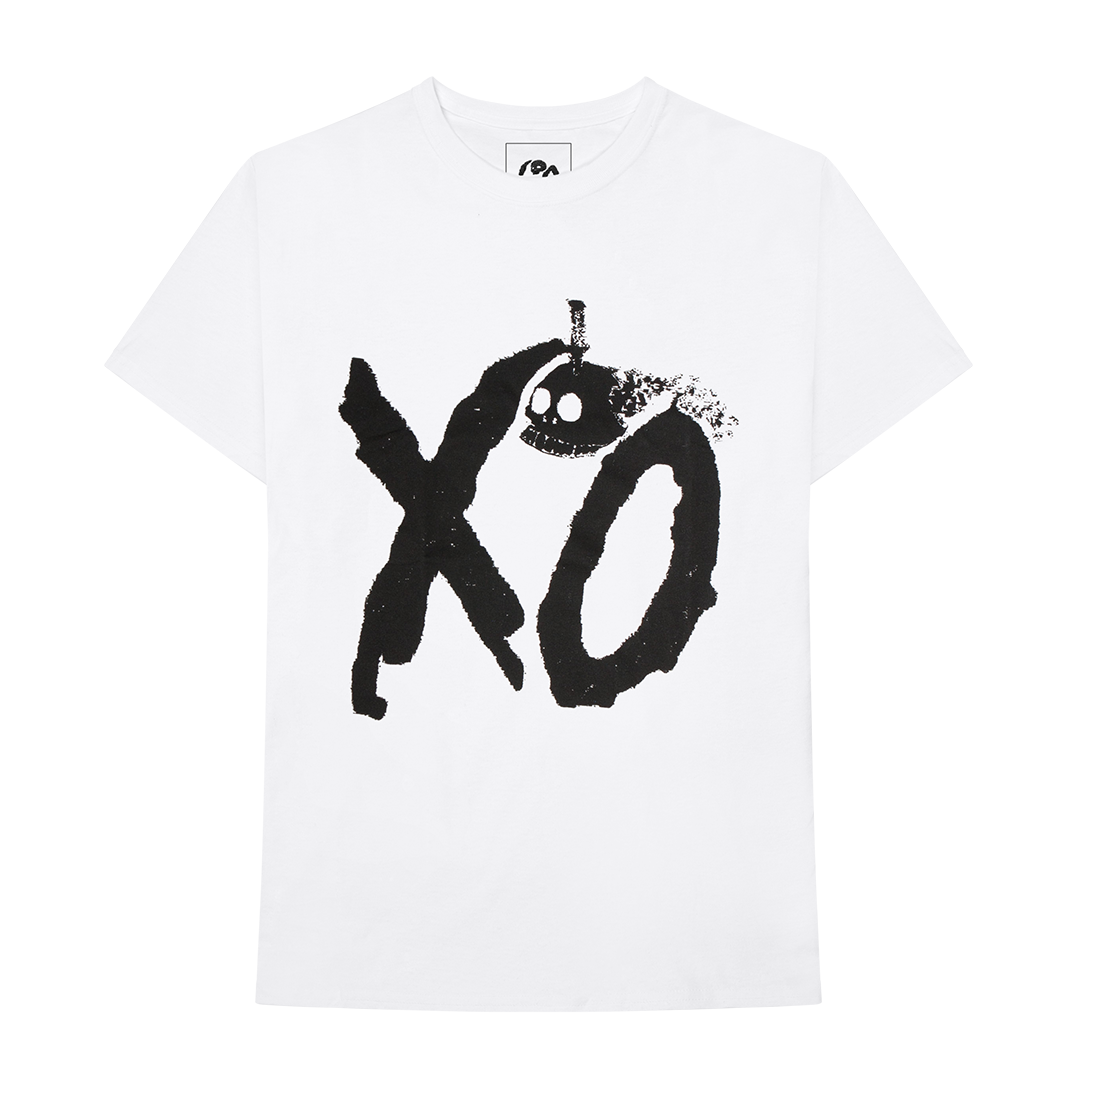 The Weeknd: CHAPTER VI LOGO TEE I - M